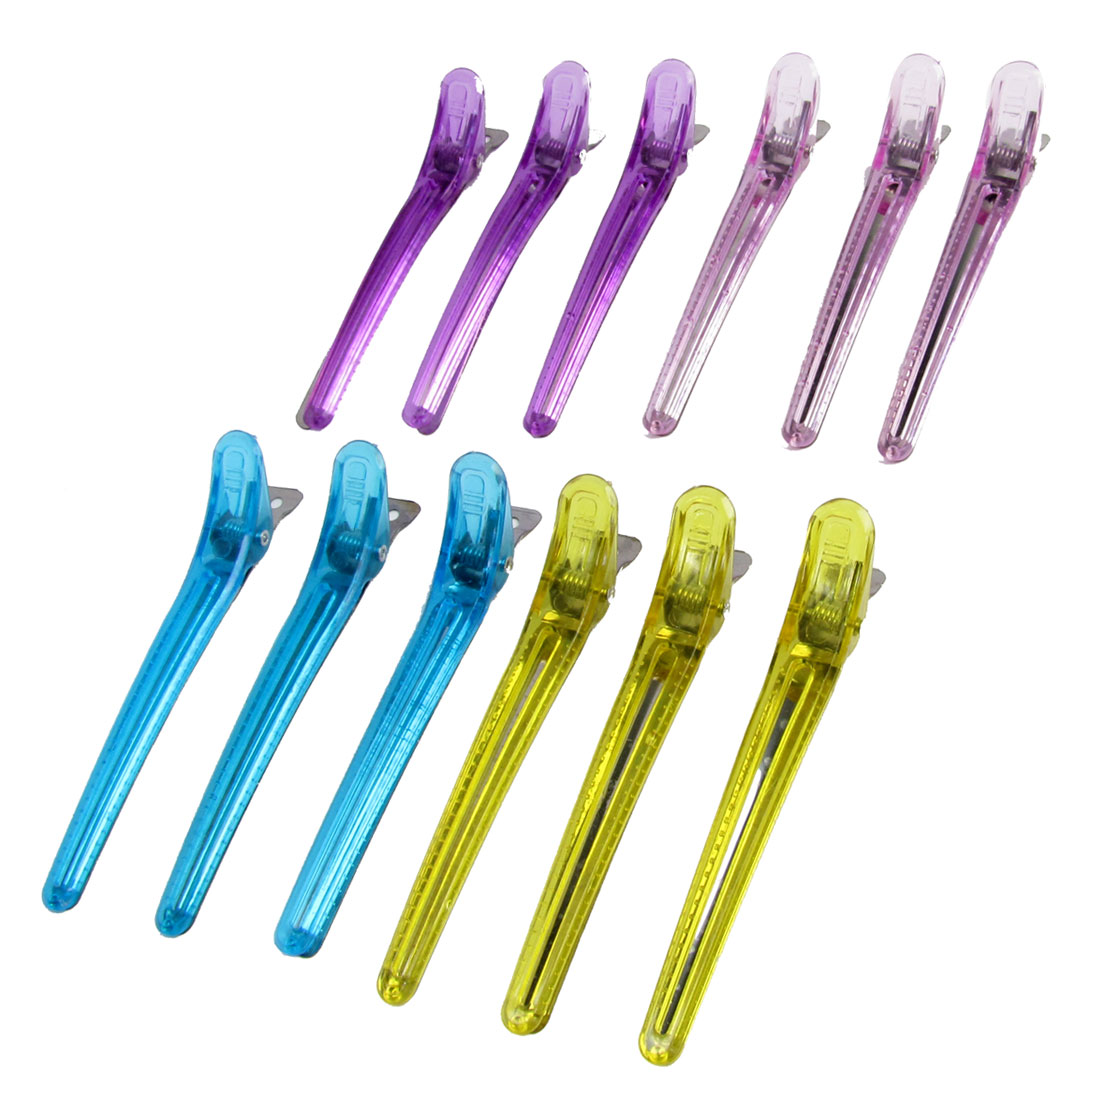 12 Pcs Assorted Colors Plastic Single Prong Hairclip Hair Clips Pin Barrette